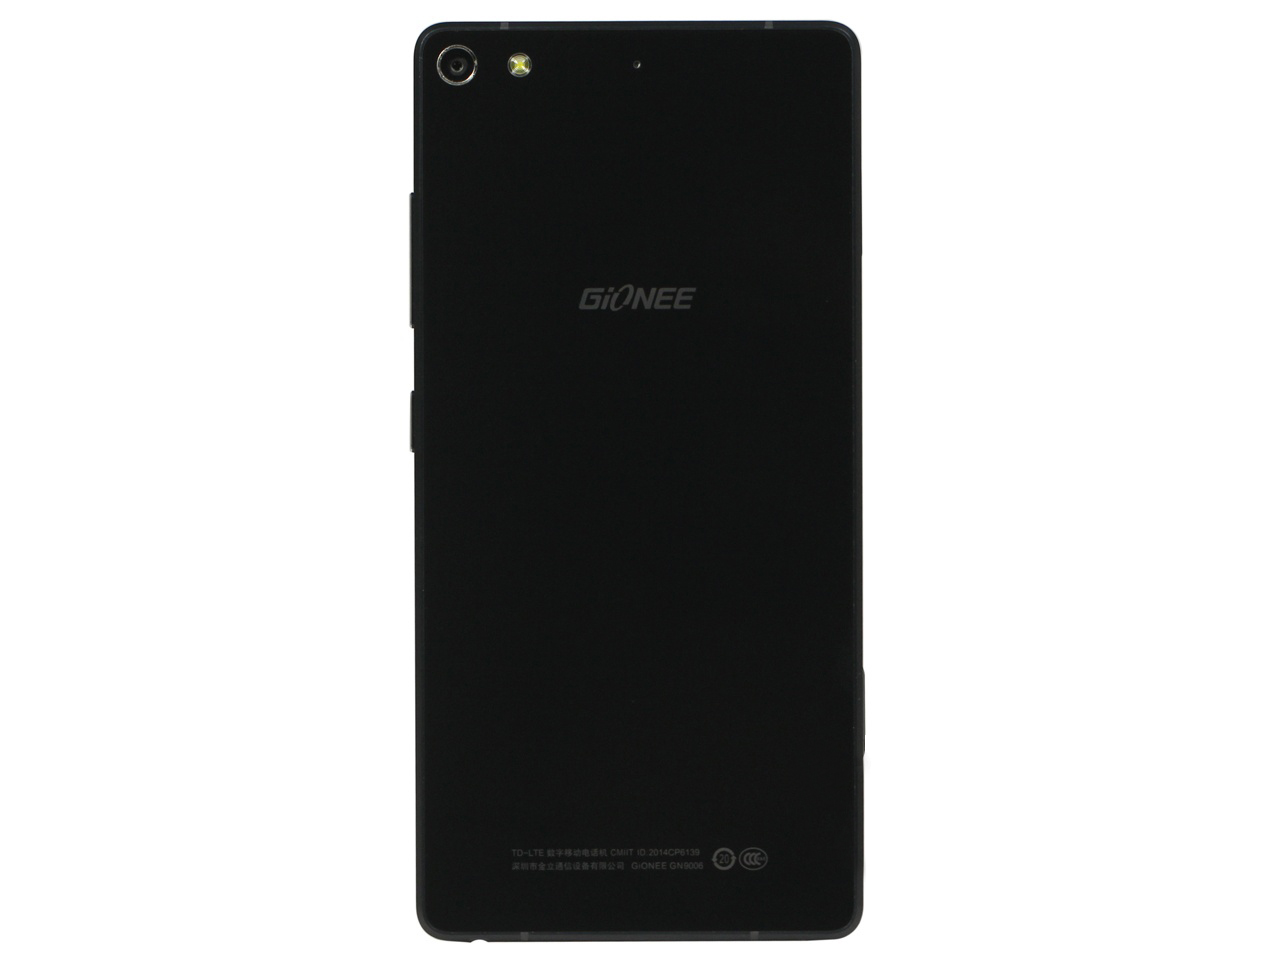 Gionee S7 rear view